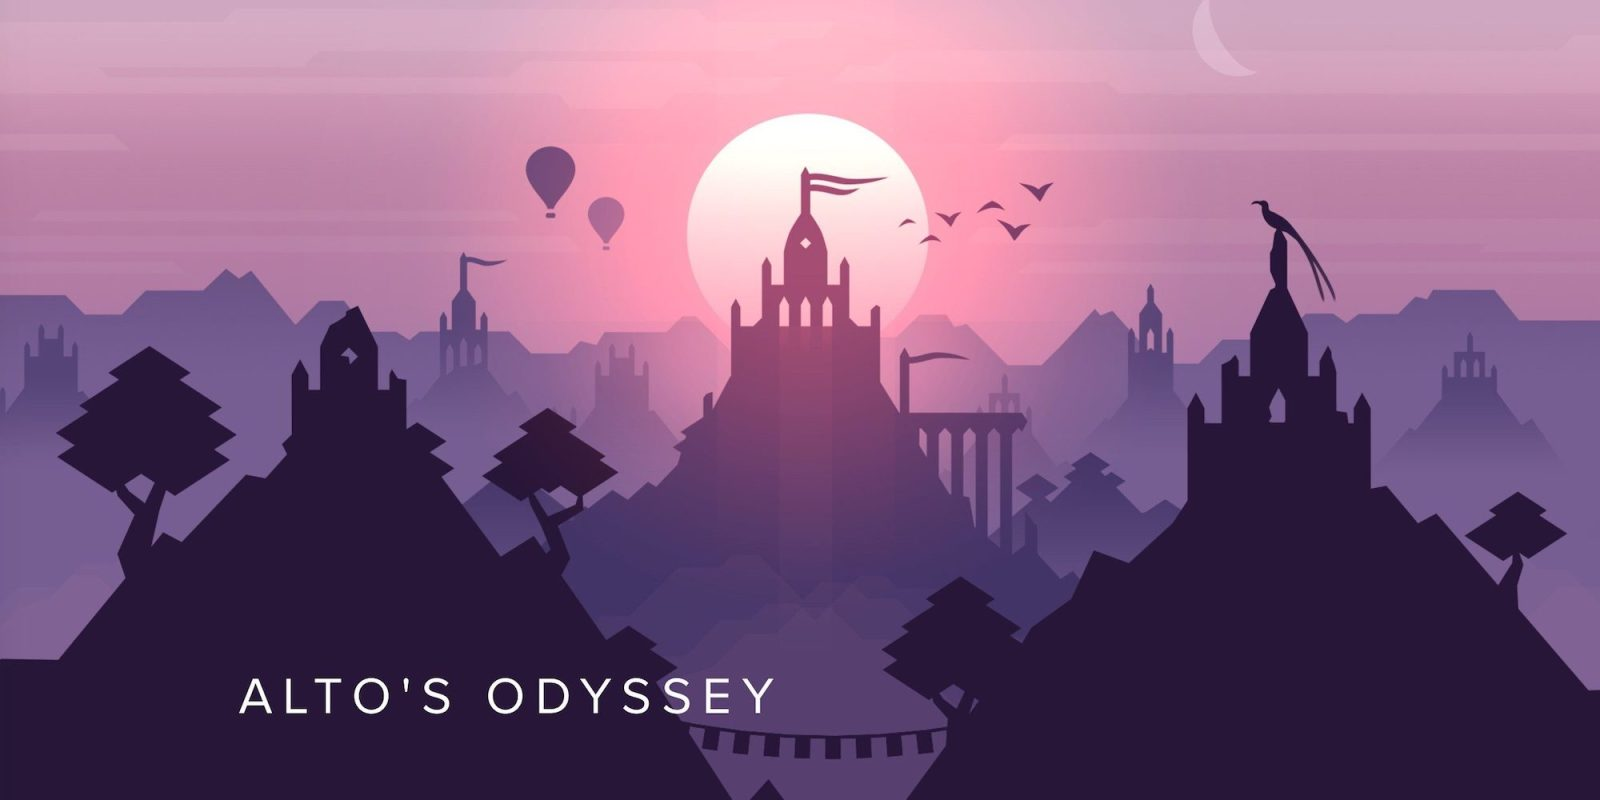 Uncover the desert's mysteries in Alto's Odyssey on iOS/Apple TV: $2 (Reg. $5)